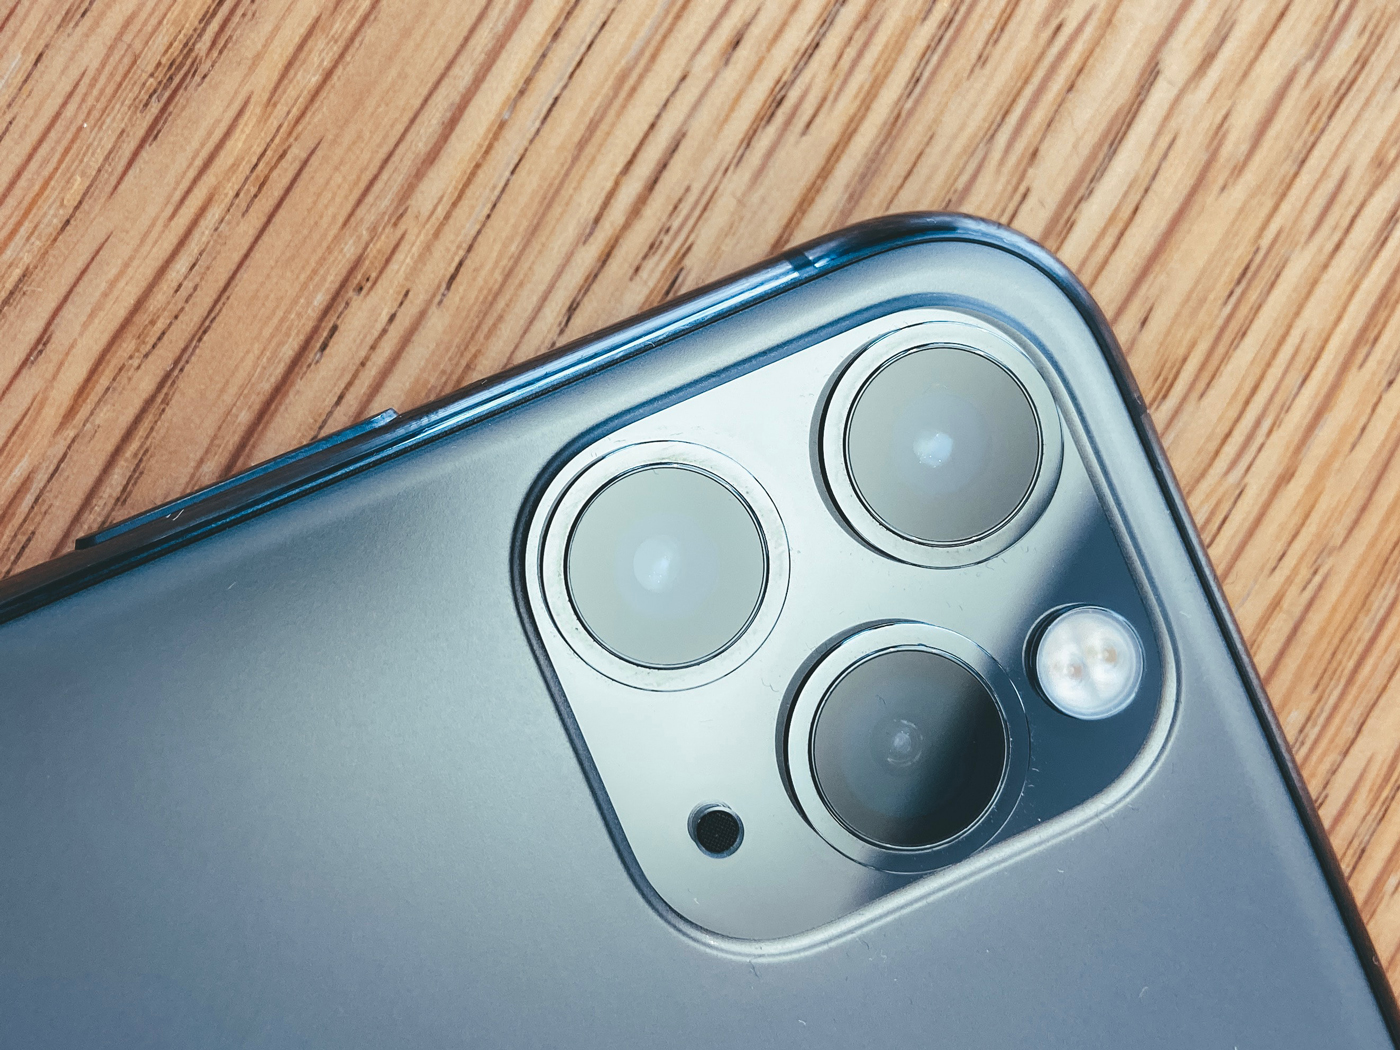 The Rear Camera Of An Iphone 11 Pro - Apple Iphone 11 - HD Wallpaper